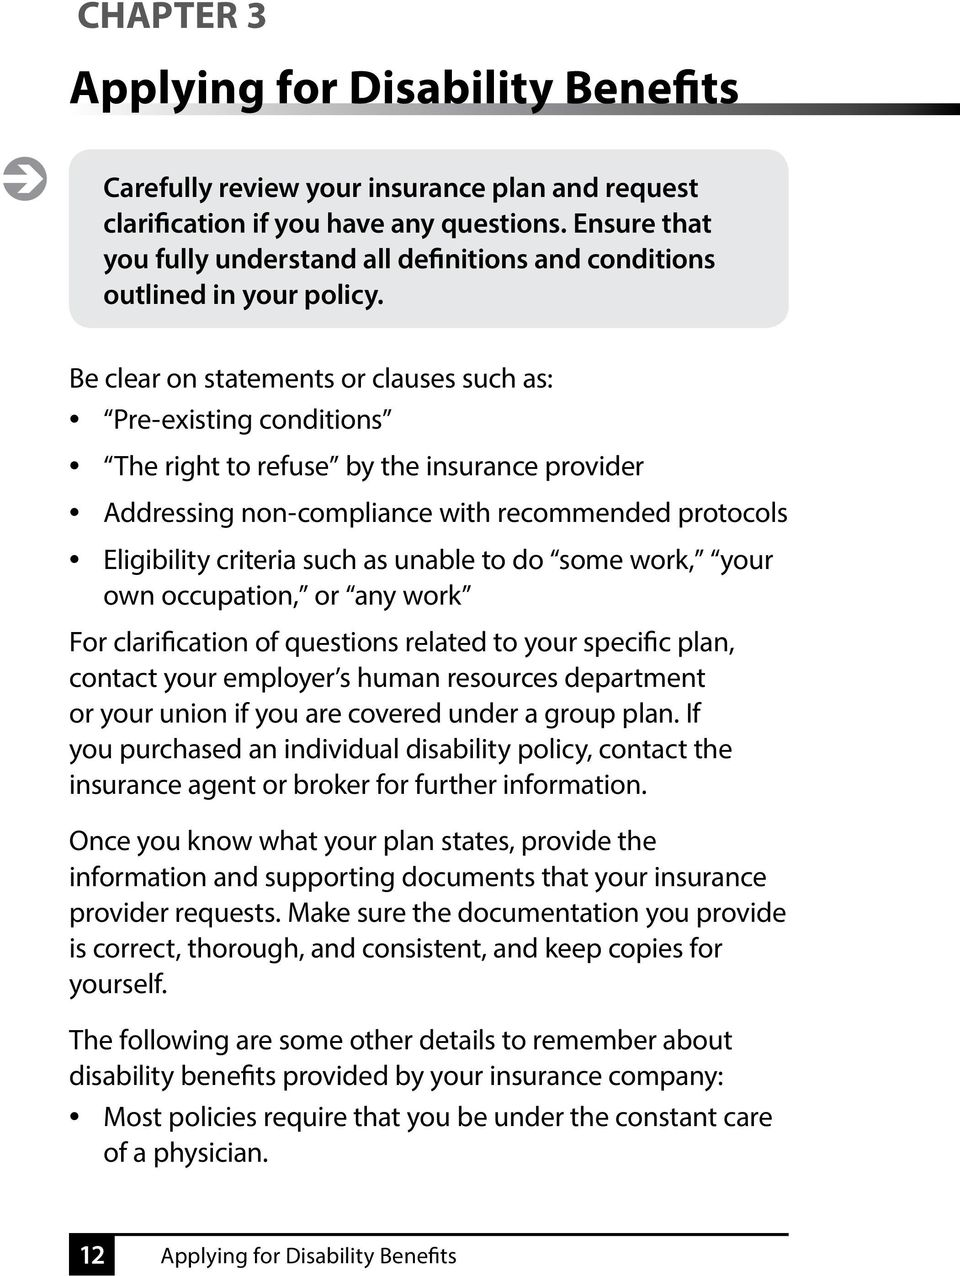 Be clear on statements or clauses such as: Pre-existing conditions The right to refuse by the insurance provider Addressing non-compliance with recommended protocols Eligibility criteria such as